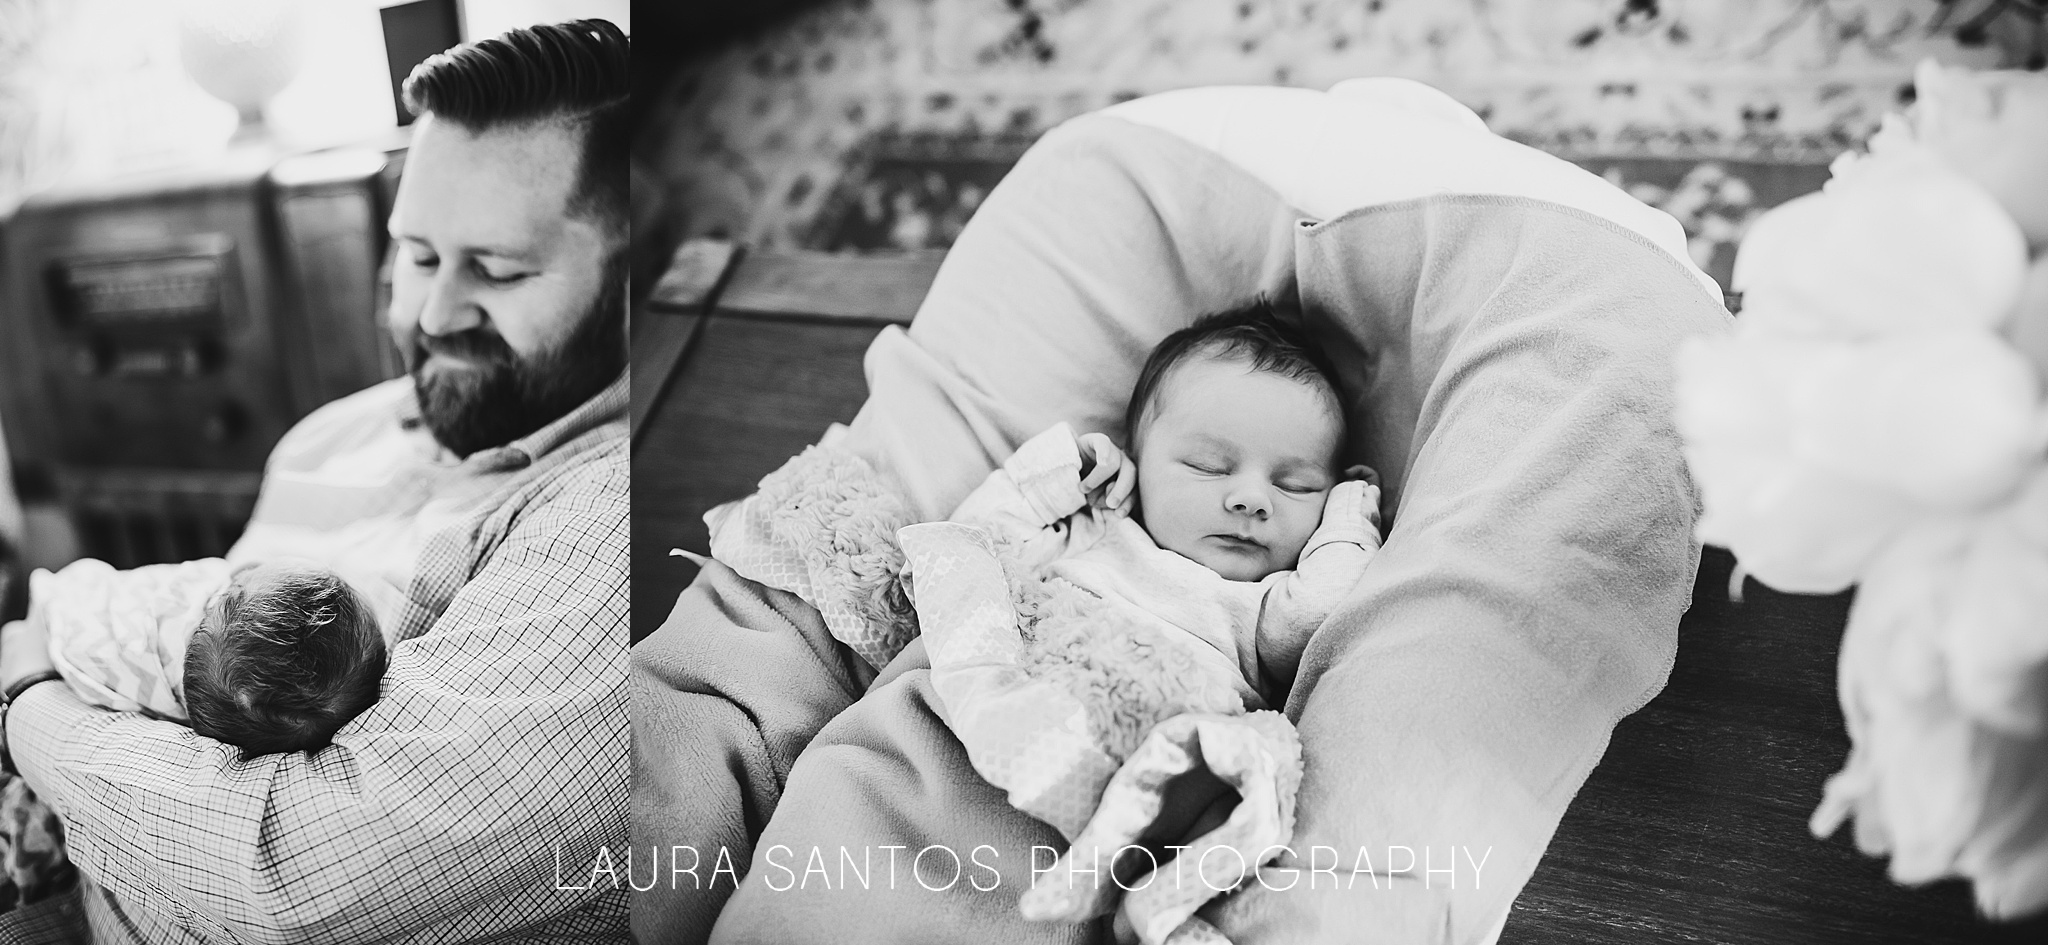 Laura Santos Photography Portland Oregon Family Photographer_0990.jpg